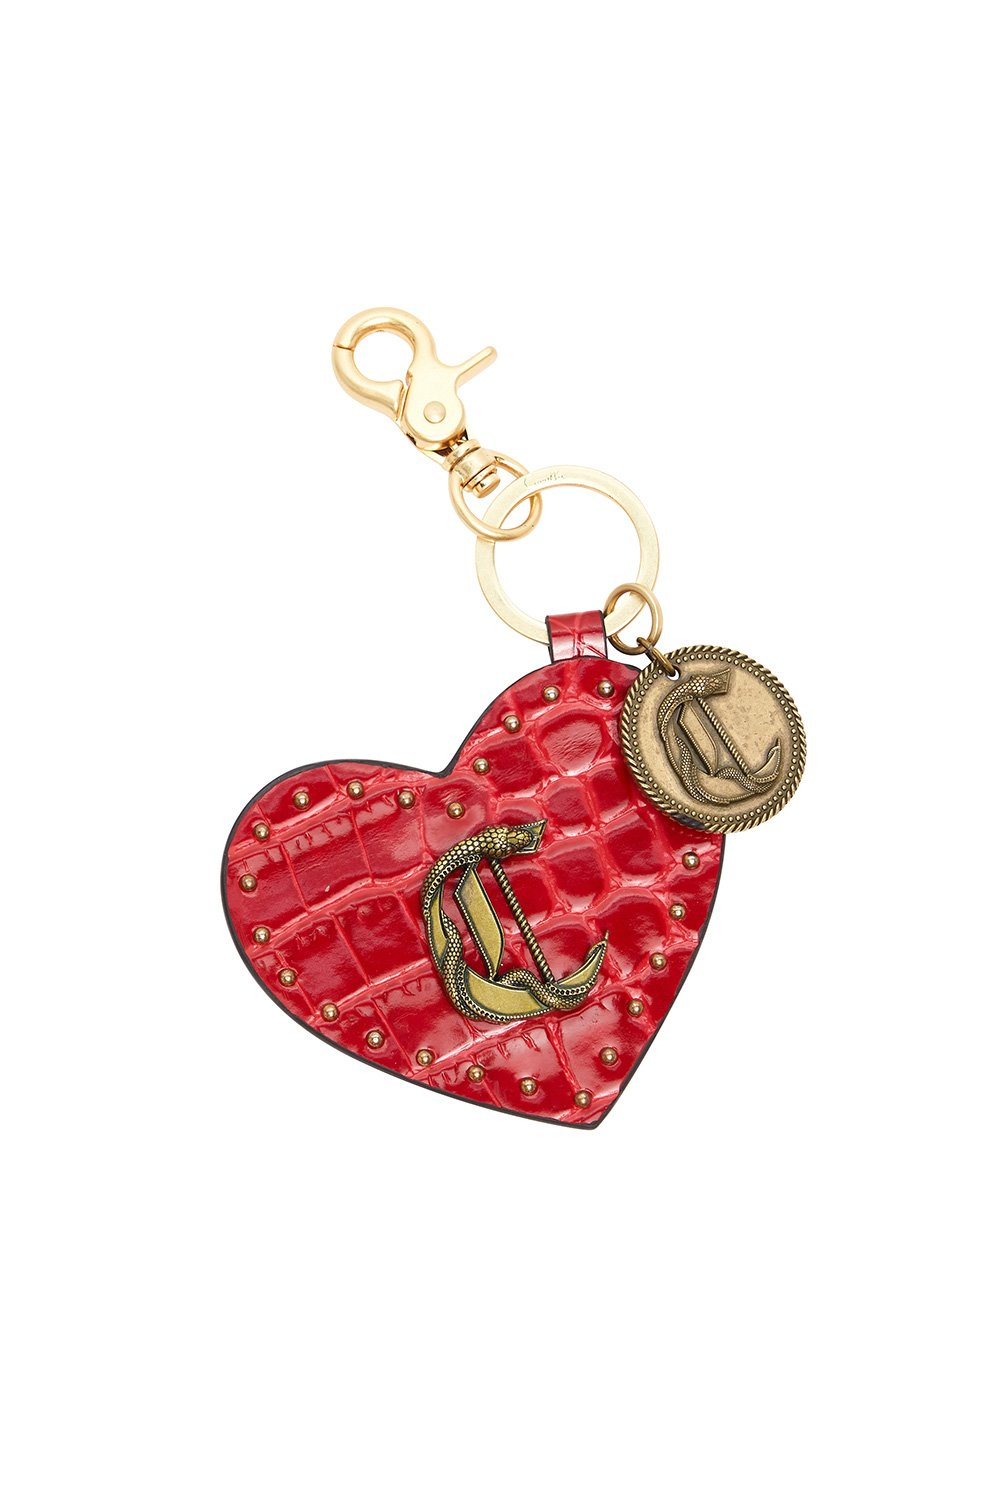 LEATHER HEART KEY RING PIRATE PUNK